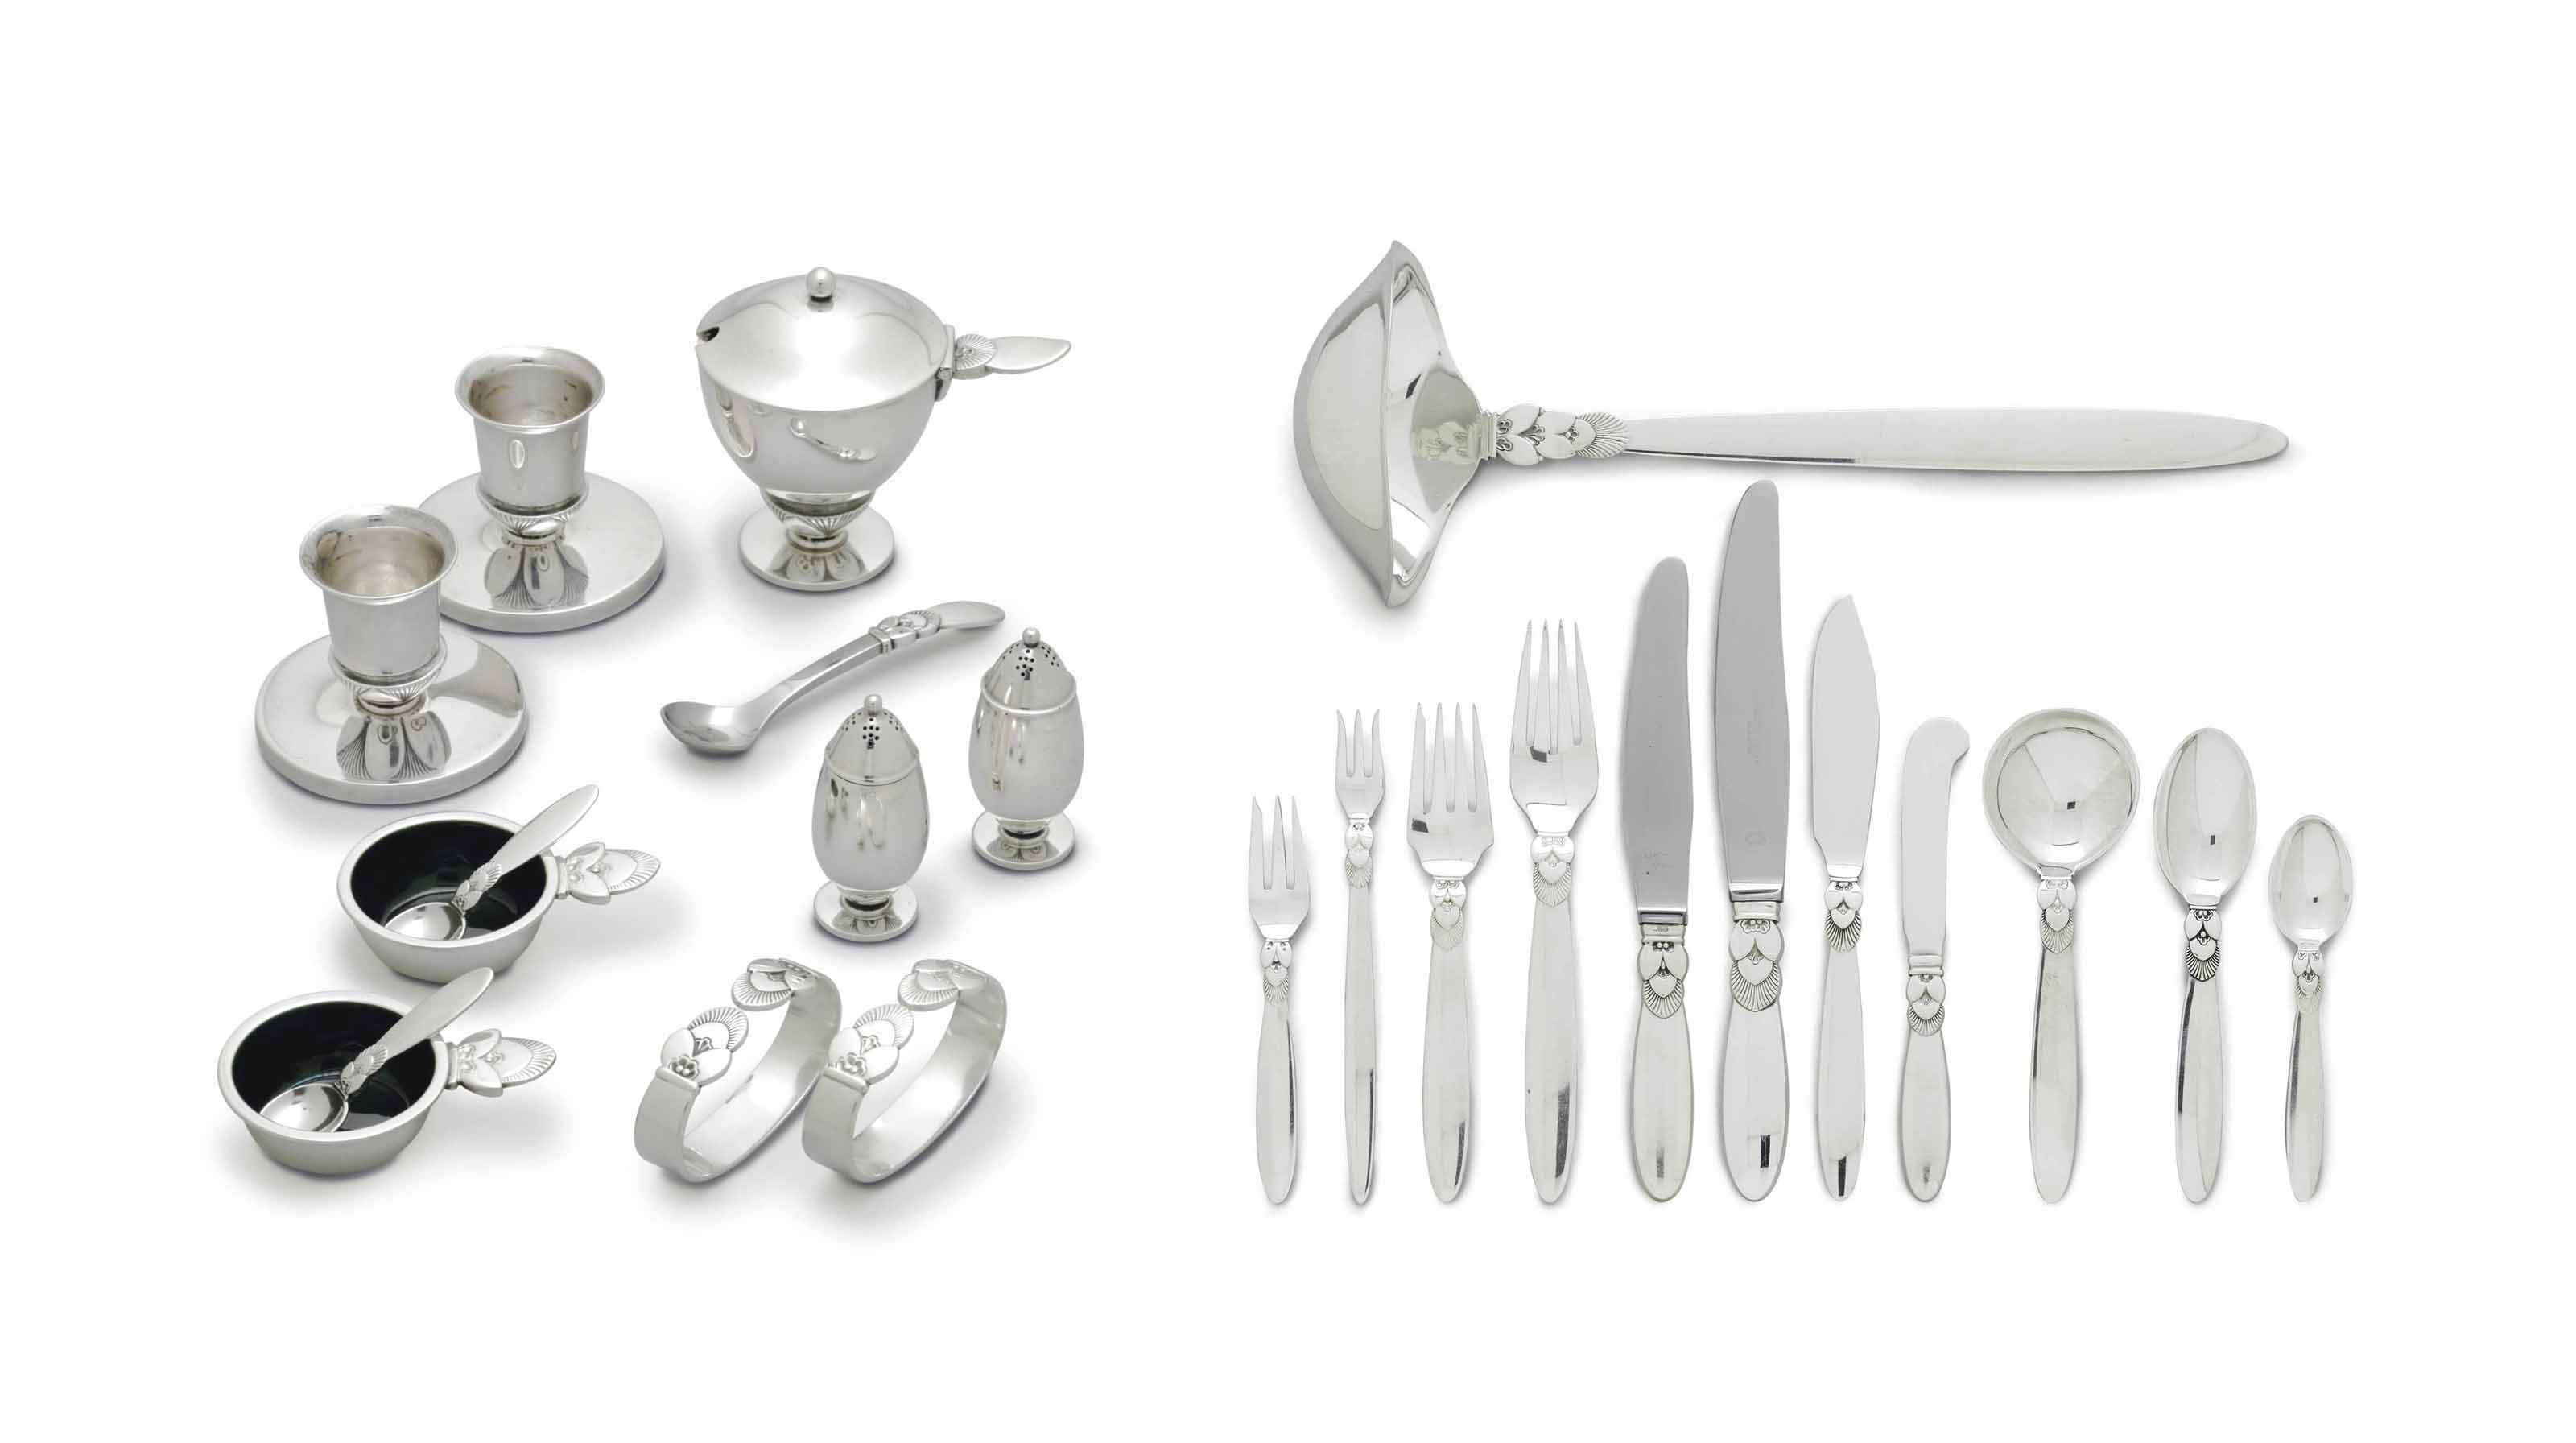 A DANISH SILVER PART FLATWARE SERVICE, DESIGNED BY GUNDORPH ALBERTUS